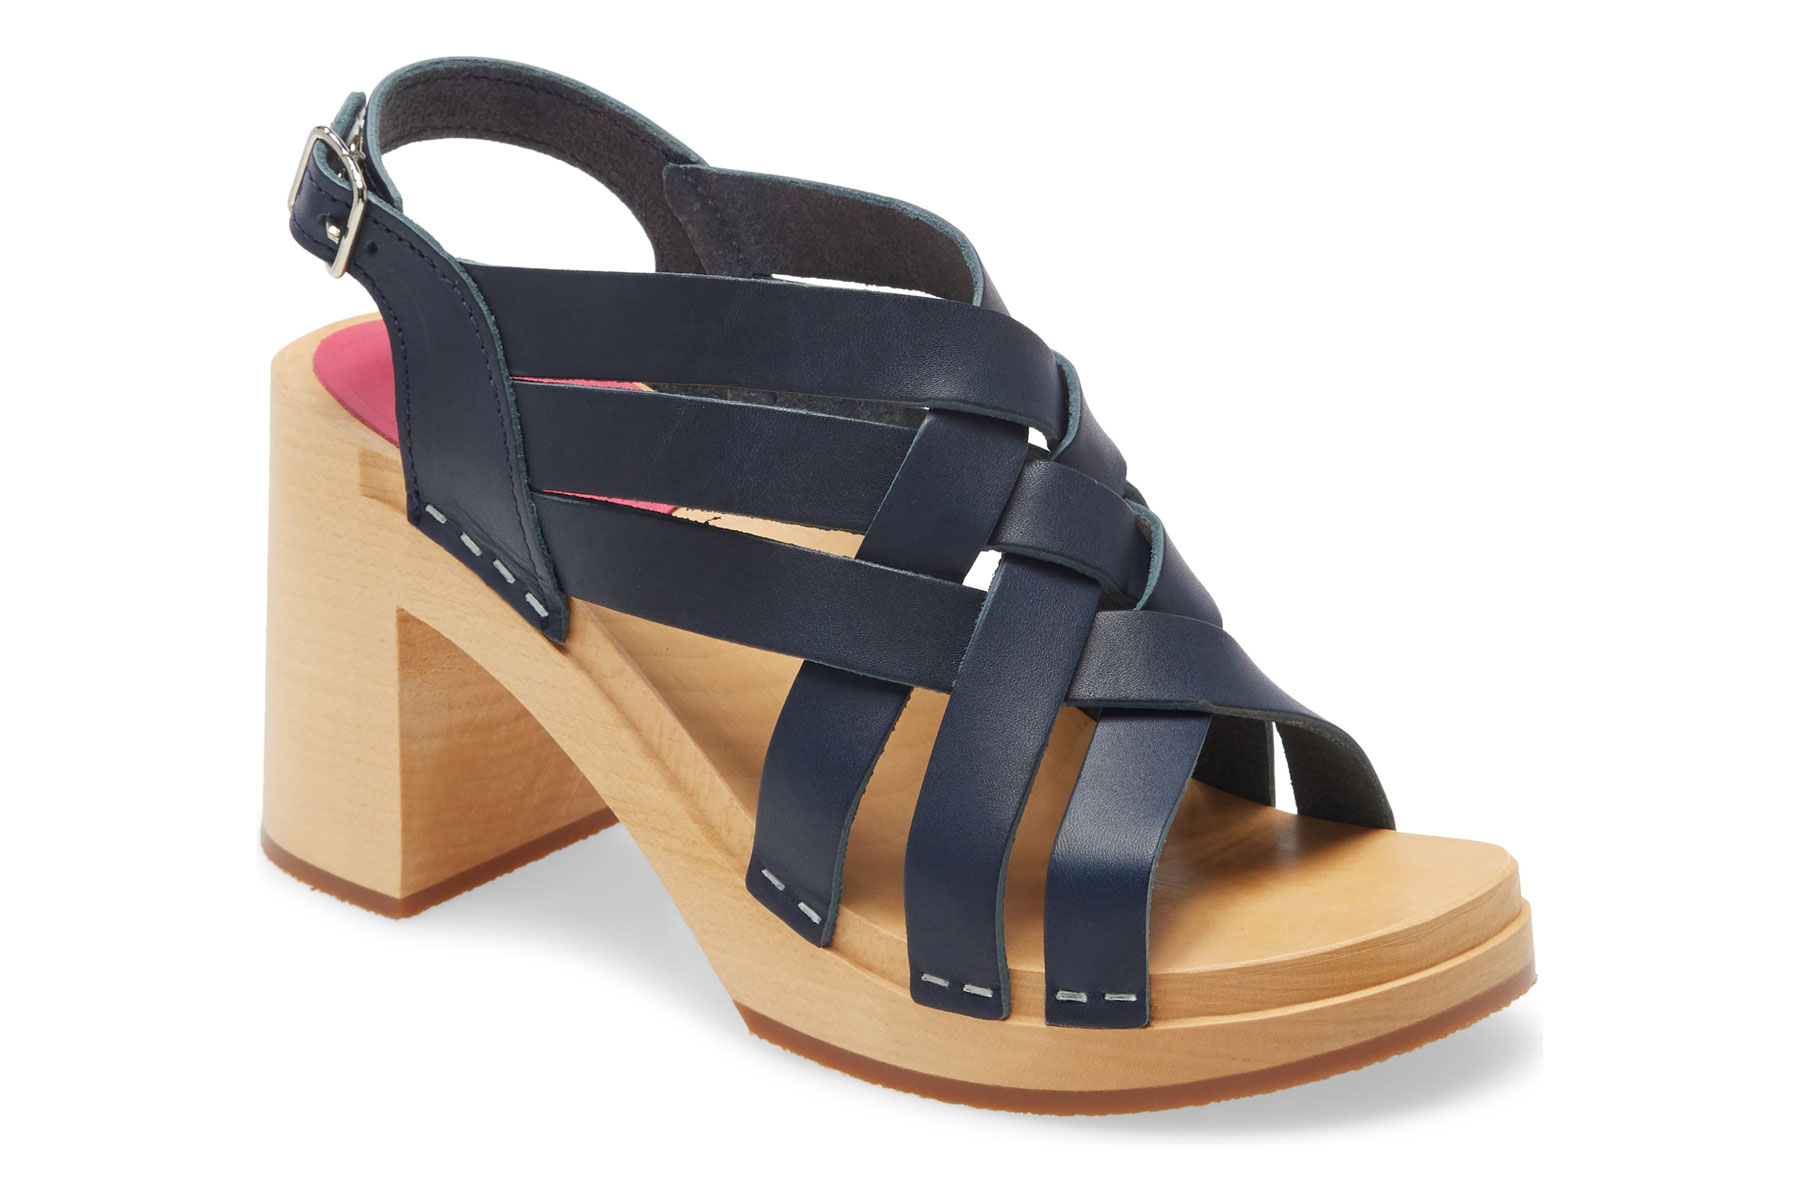 Navy leather and wooden sandals